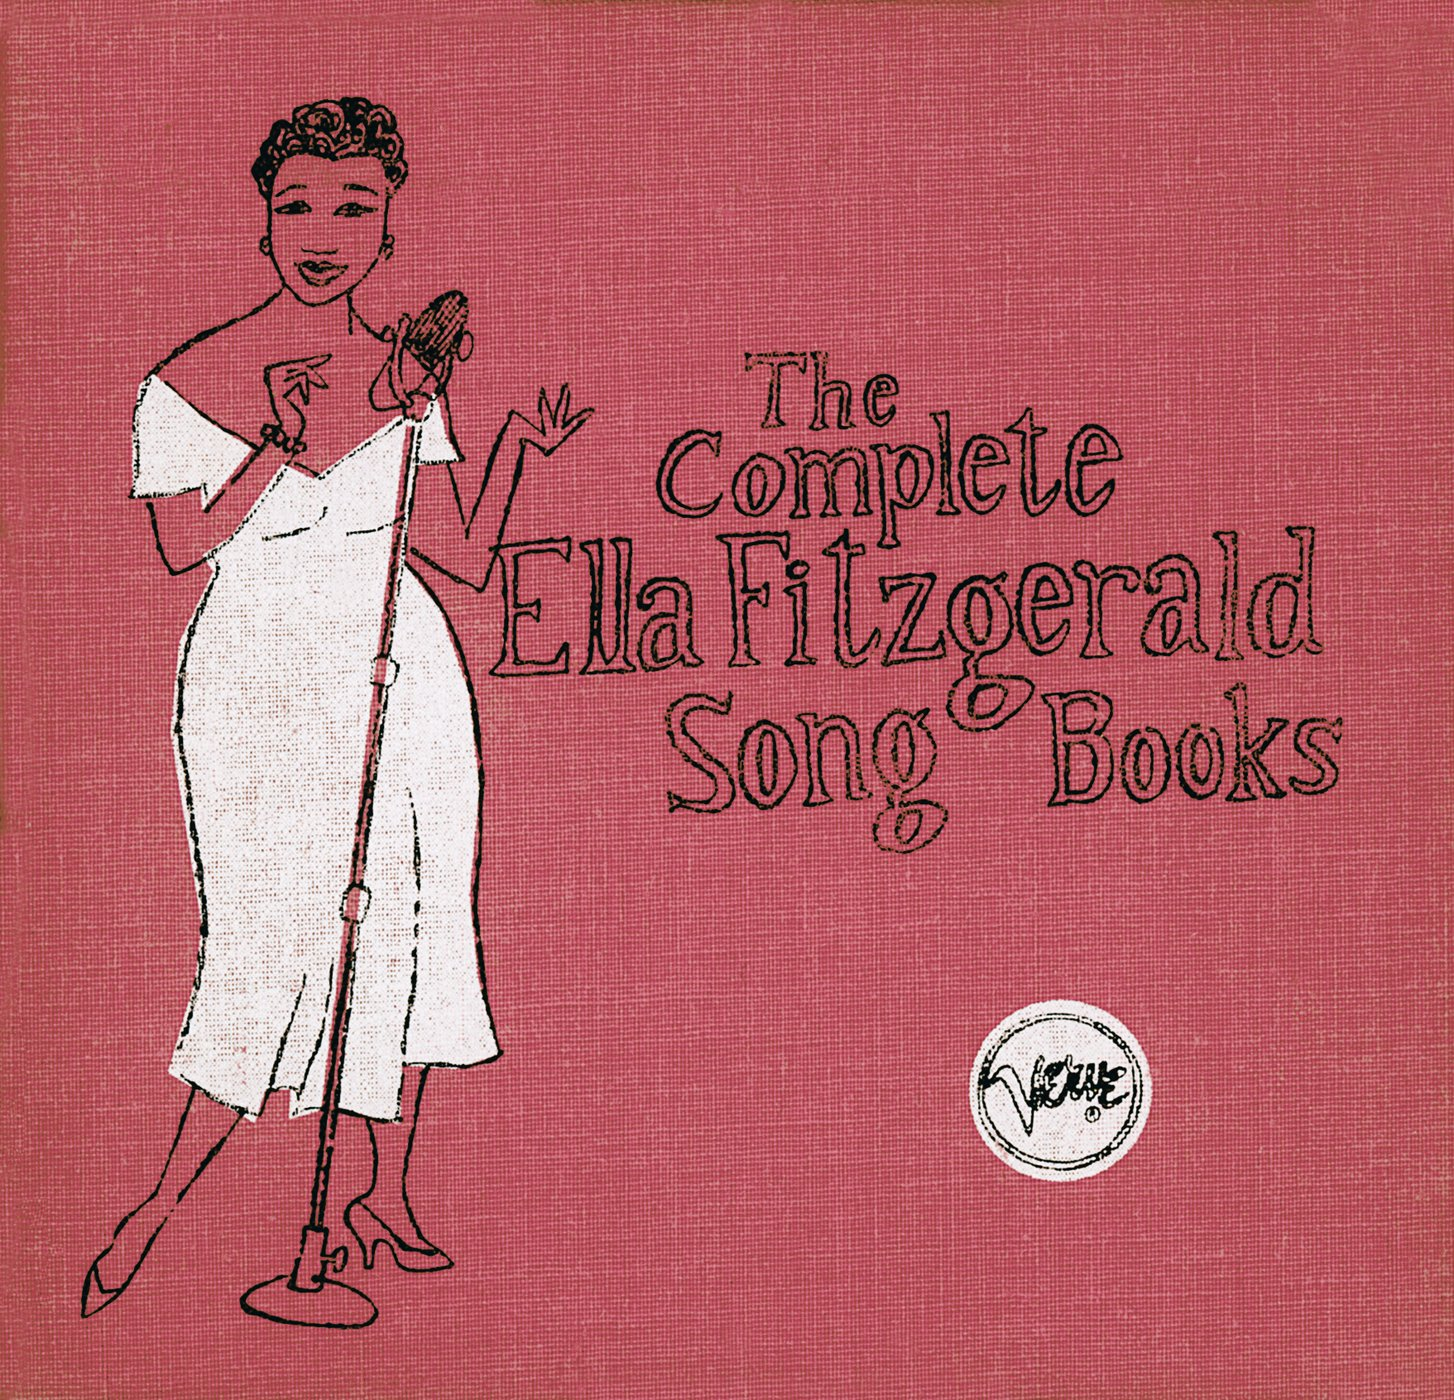 The Complete Ella Fitzgerald Song Books by Verve Records